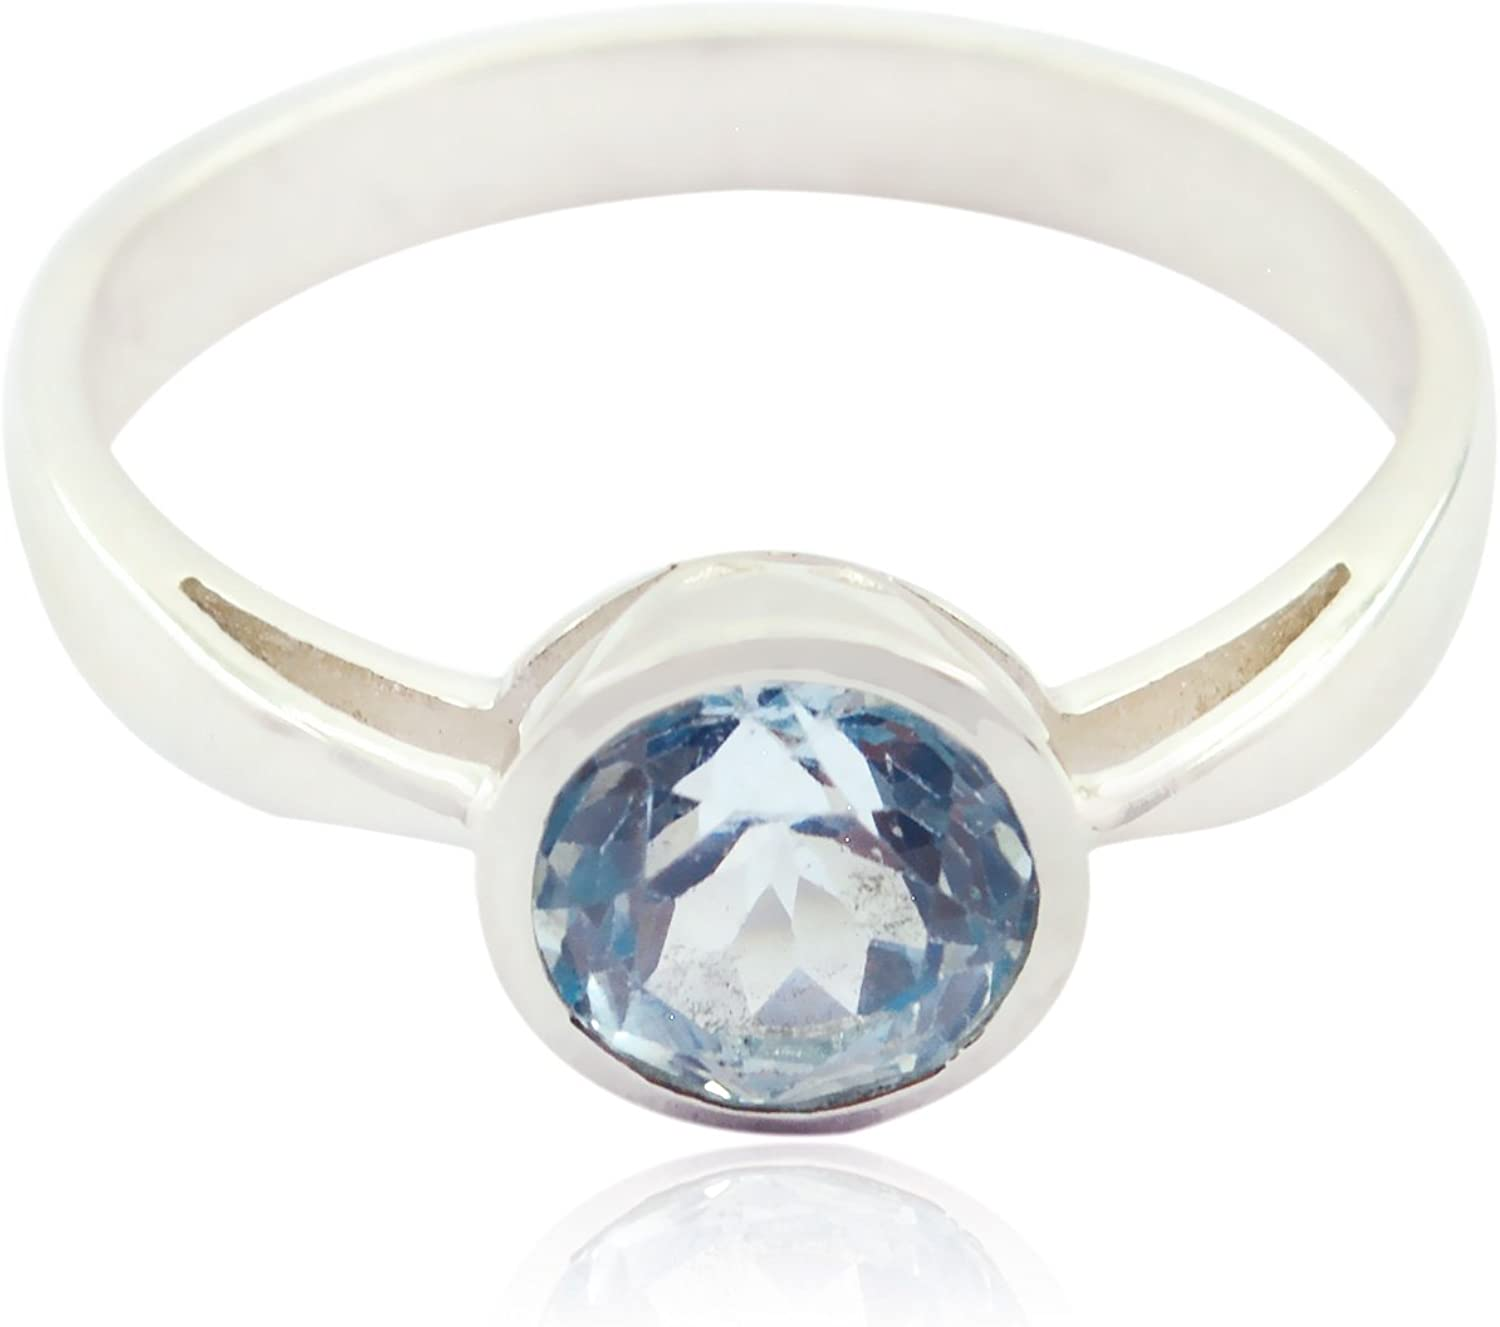 Wholesale Jewellery Shops Gift Name Ring Lovely Gemstones Round Faceted Blue Topaz Rings Sterling Silver Blue Blue Topaz Lovely Gemstones Ring